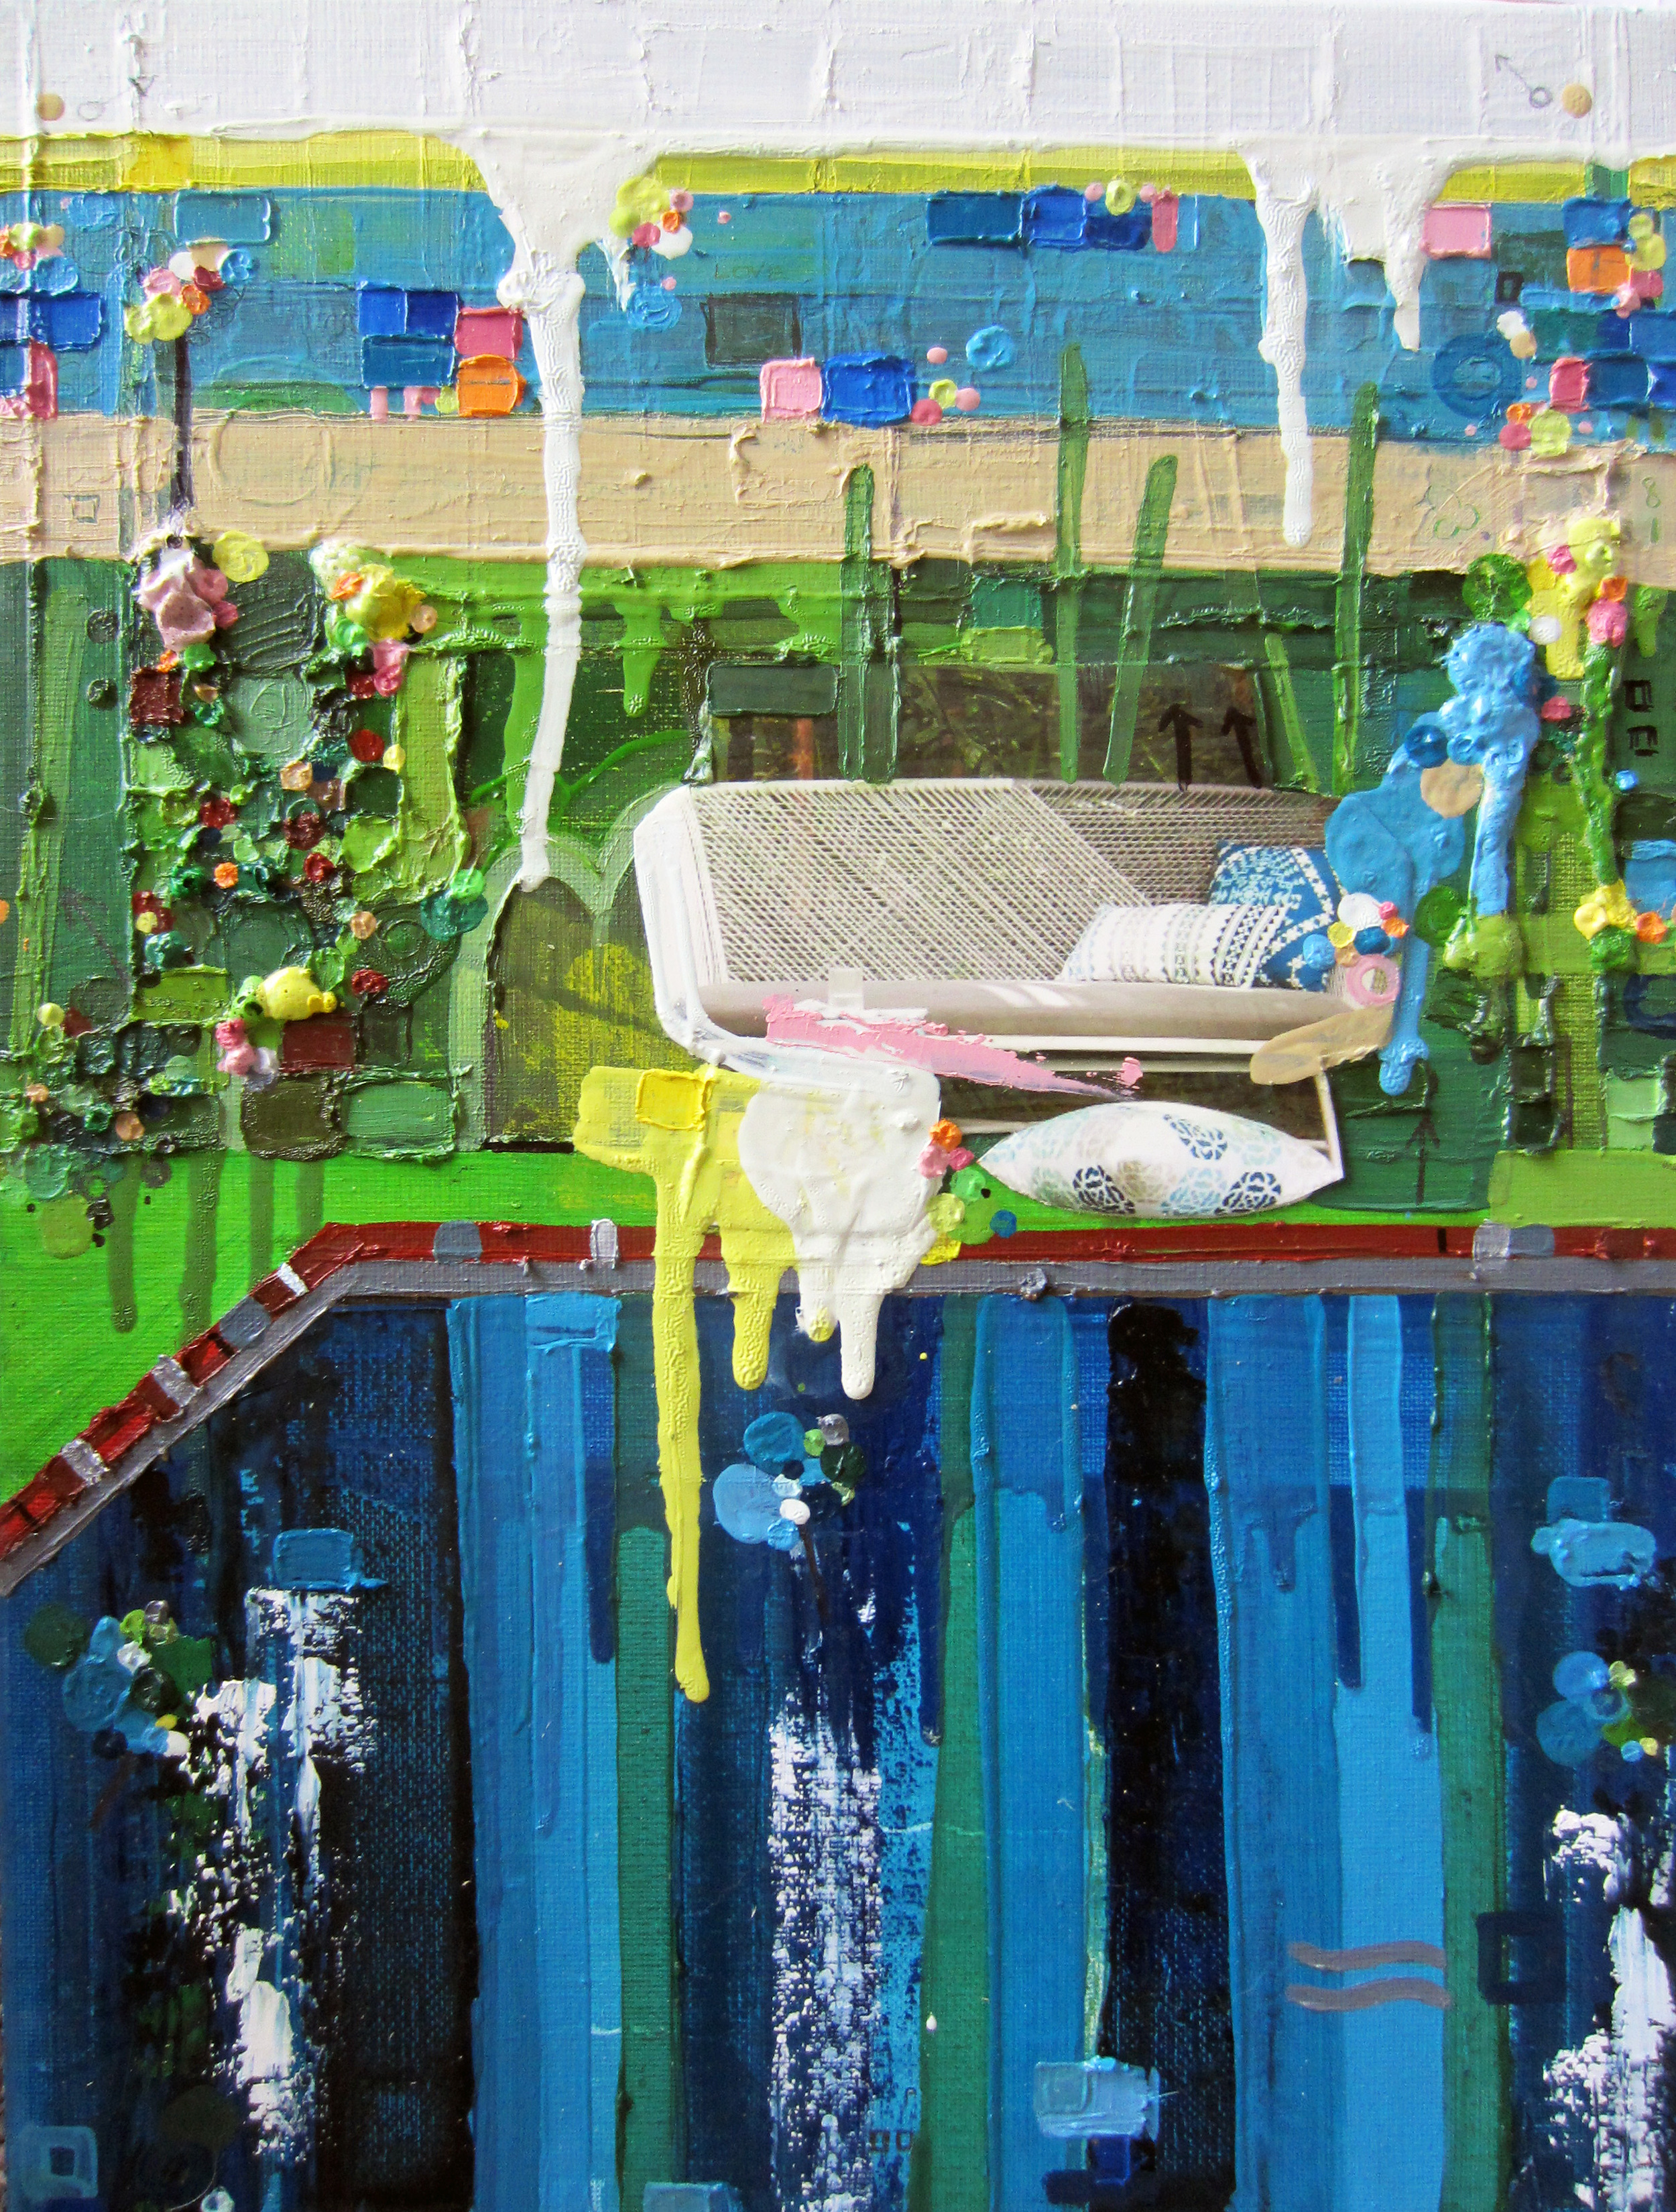 Return To Tropicalia, 2013,Oil and Mixed Media on canvas, 18 x 24 inches